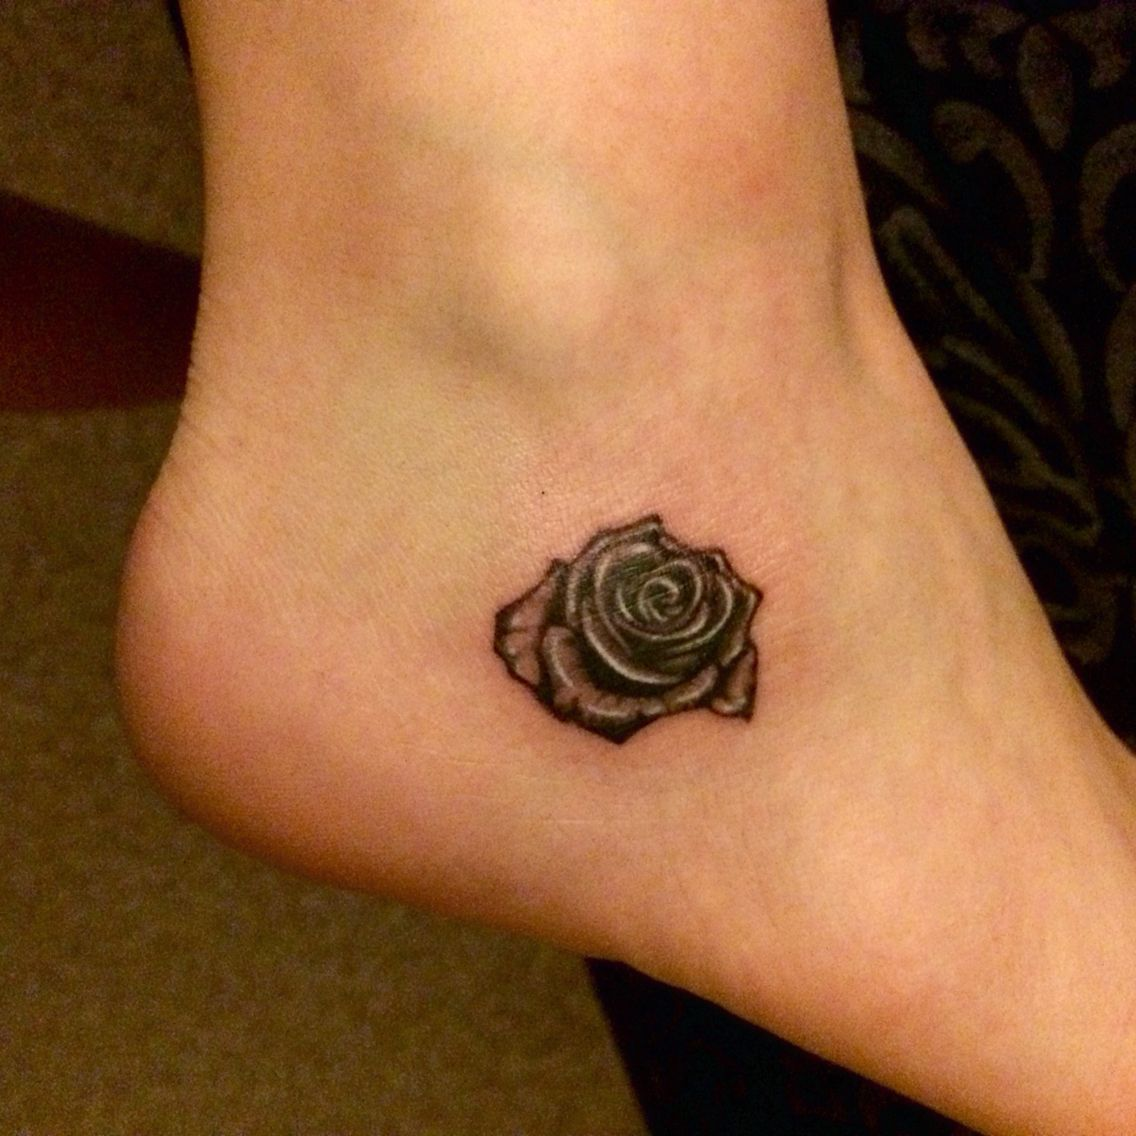 Tattoo Of Rose Small: Small Black And White Rose Ankle Tattoo :)